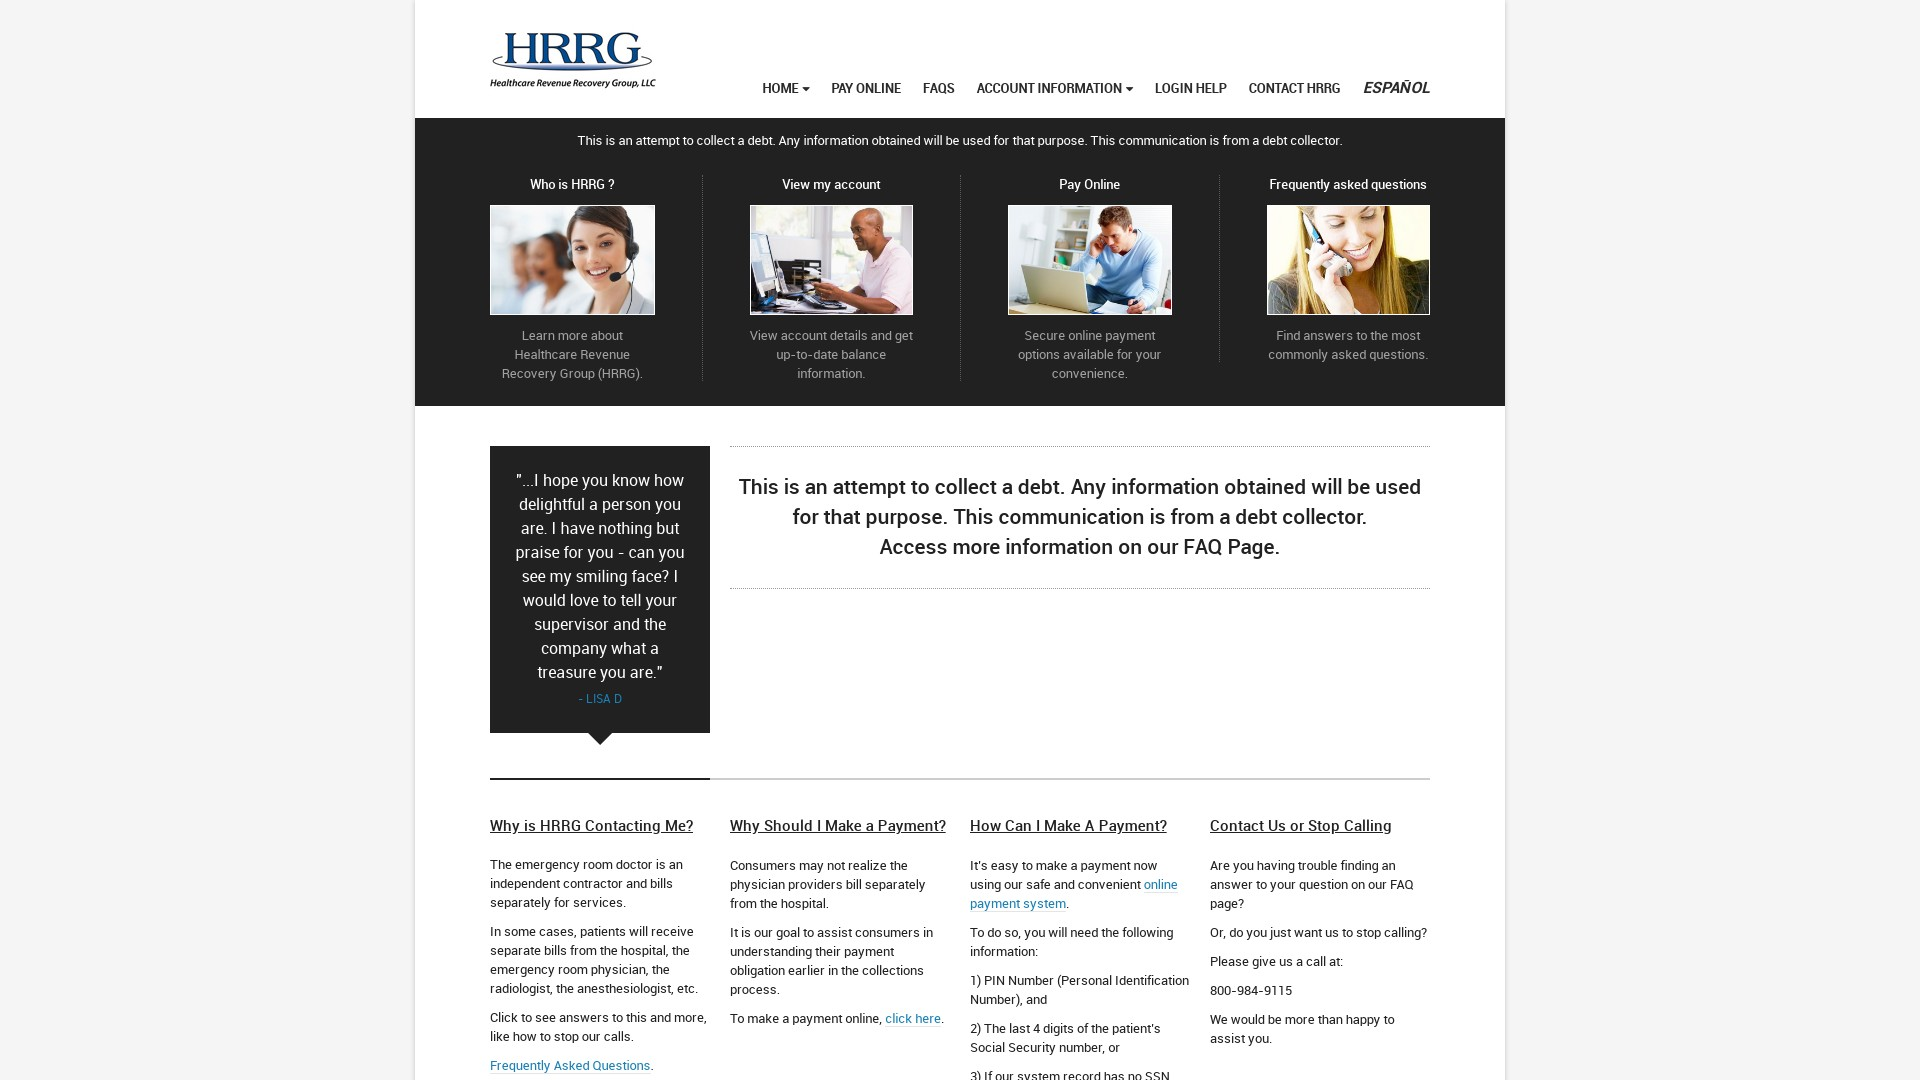 Is hrrg collections a Scam? Review of the Debt Collection Website